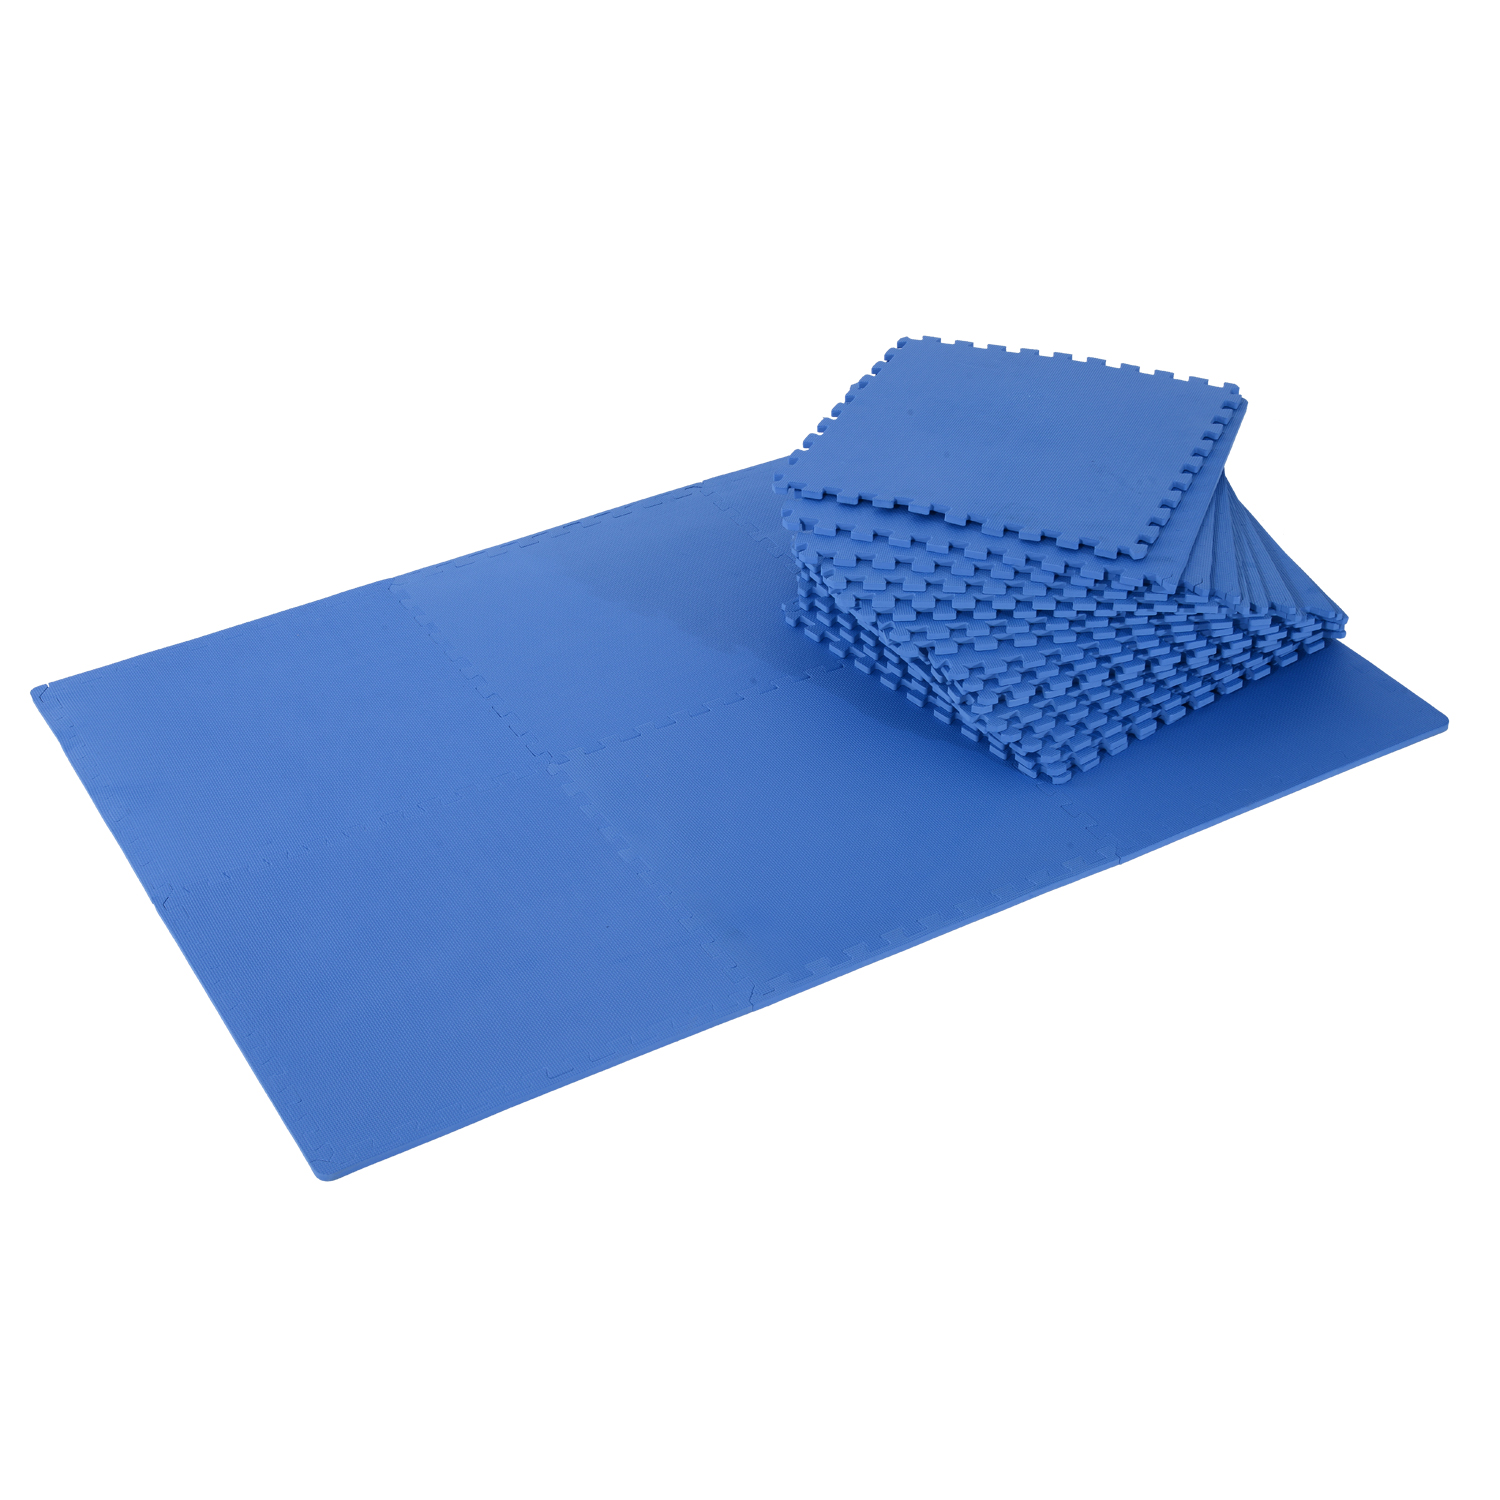 Homcom Tapis Interconnectables en Mousse Bleu 62 x 62 x 1 cm